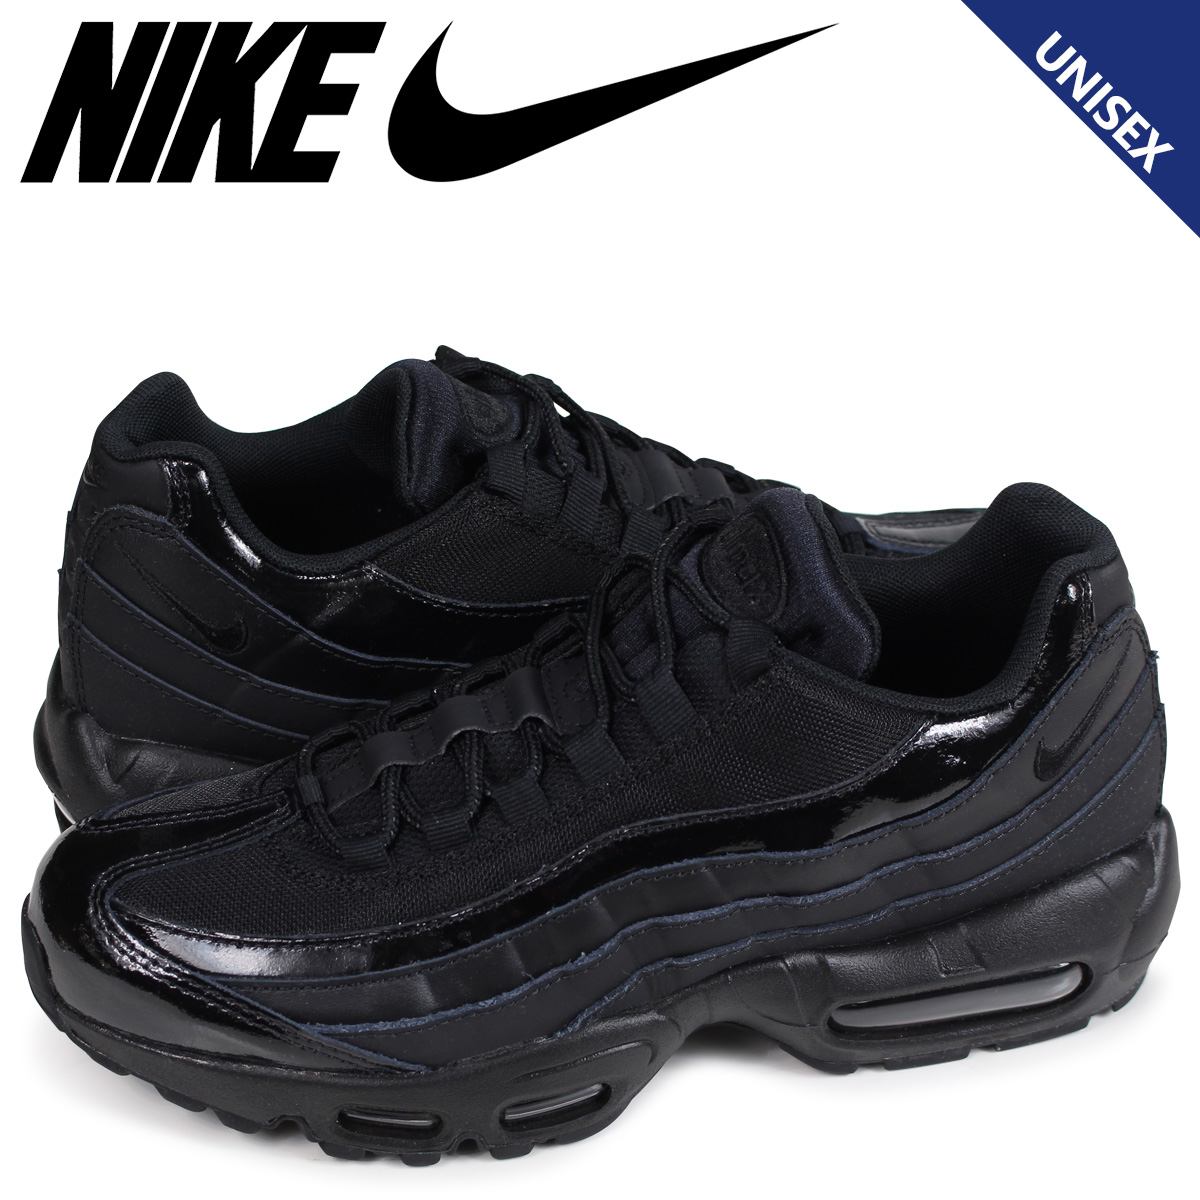 best authentic c39a2 61171 Nike NIKE Air Max 95 sneakers Lady s men WMNS AIR MAX 95 307,960-010 black